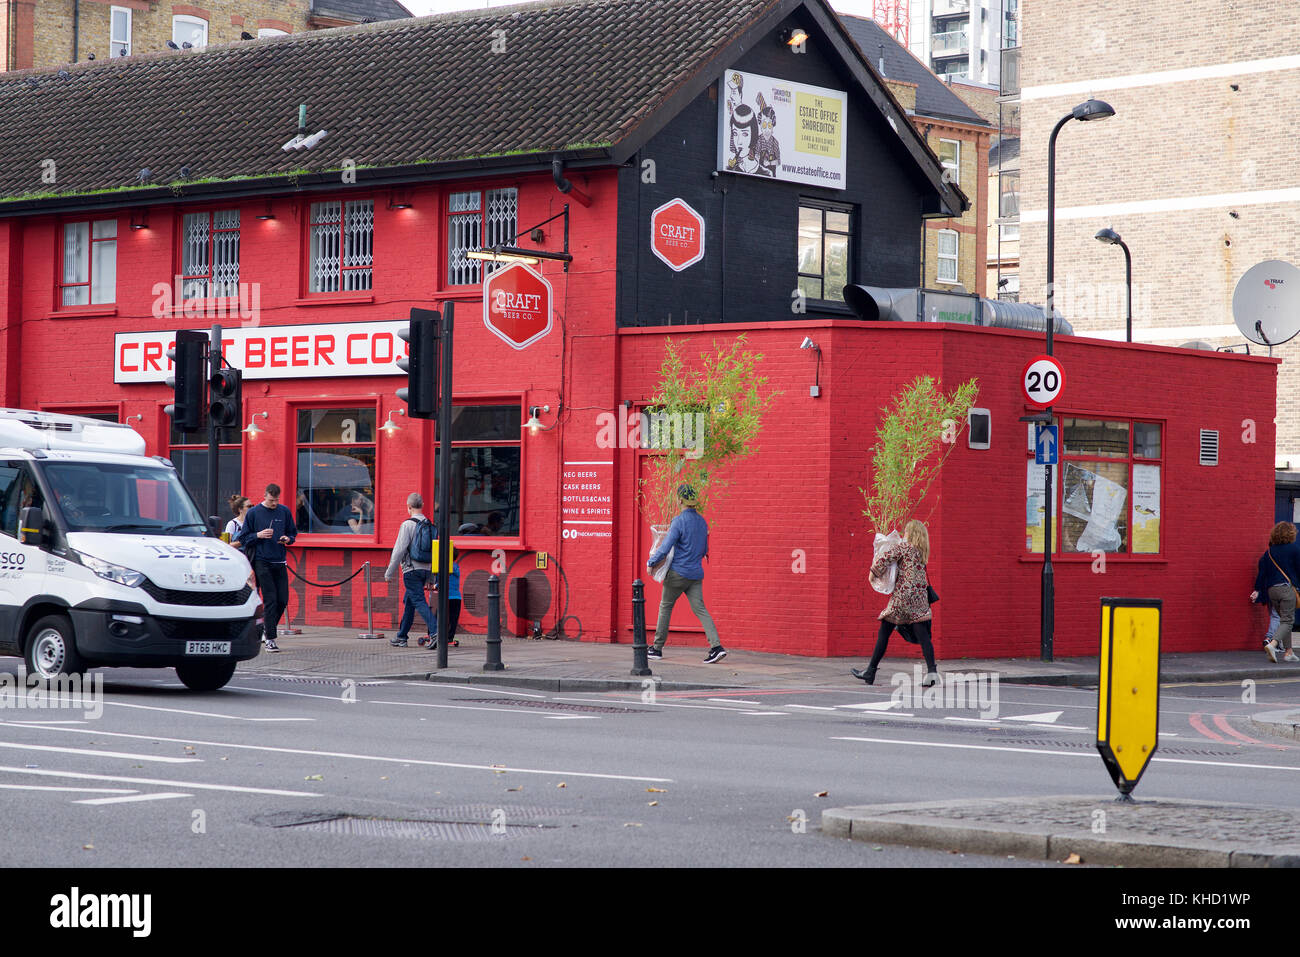 Craft Beer Company on Old Street, Shoreditch, London Stock Photo